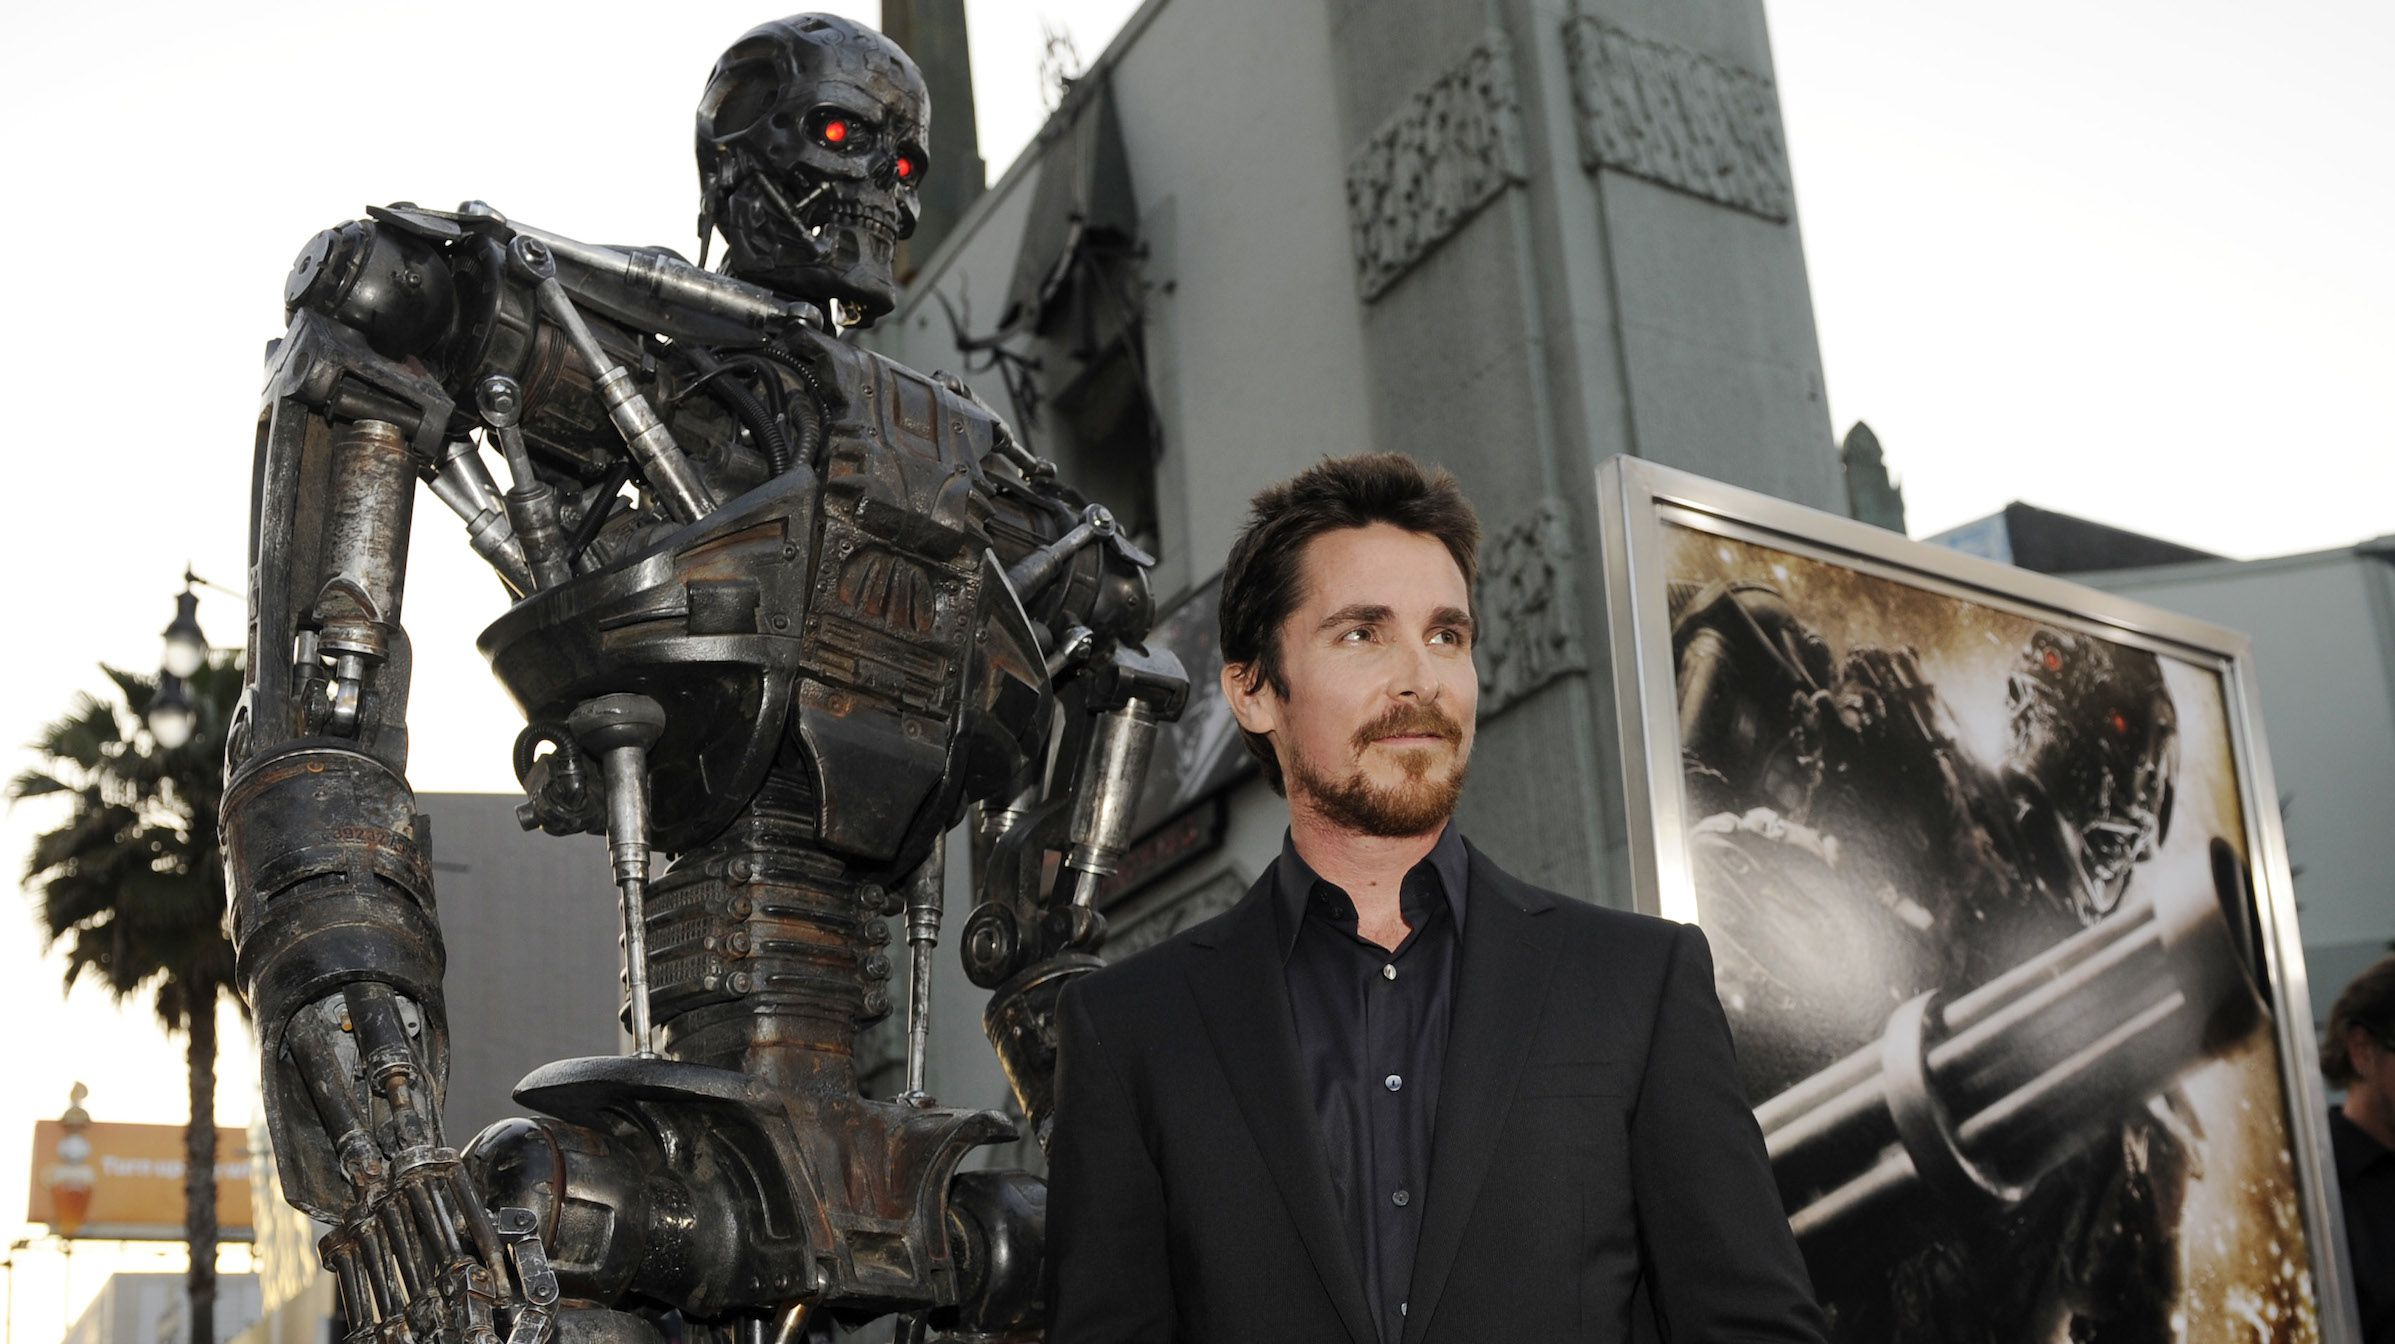 """Christian Bale, star of """"Terminator Salvation,"""" poses at the premiere of the film in Los Angeles, Thursday, May 14, 2009. (AP Photo/Chris Pizzello)"""